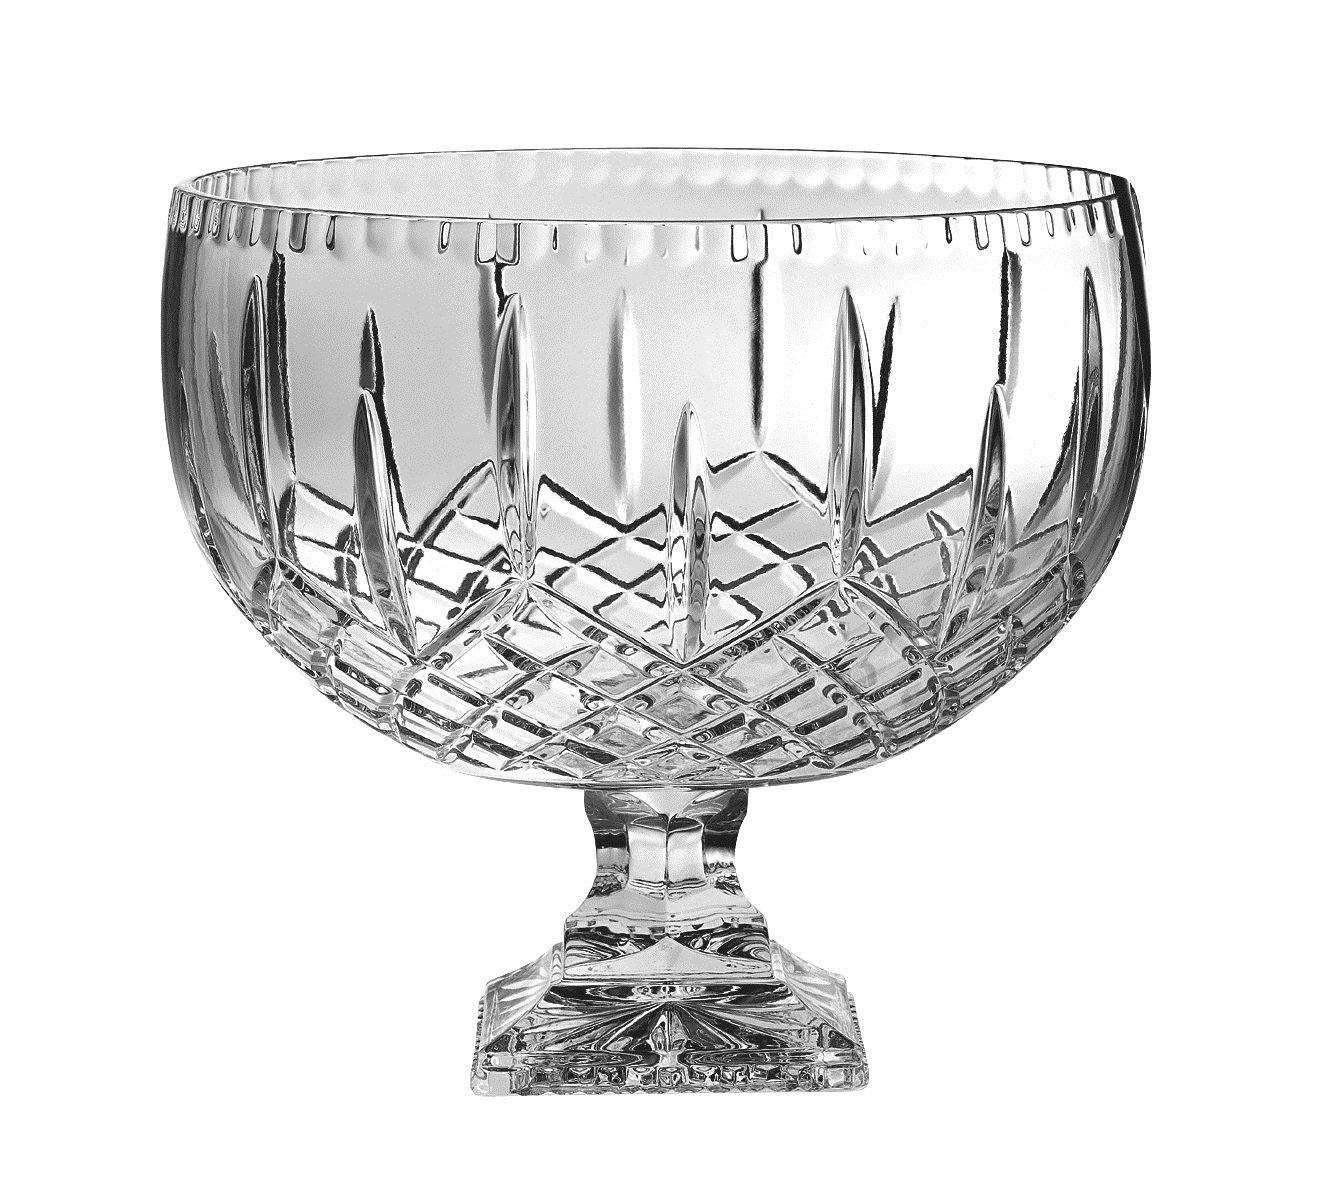 Barski - European Crystal - Handmade - Large Centerpiece Footed Bowl -Punch Bowl - 12'' D - (12'' Diameter ) - 270 oz - 8.5 quarts - Made in Europe